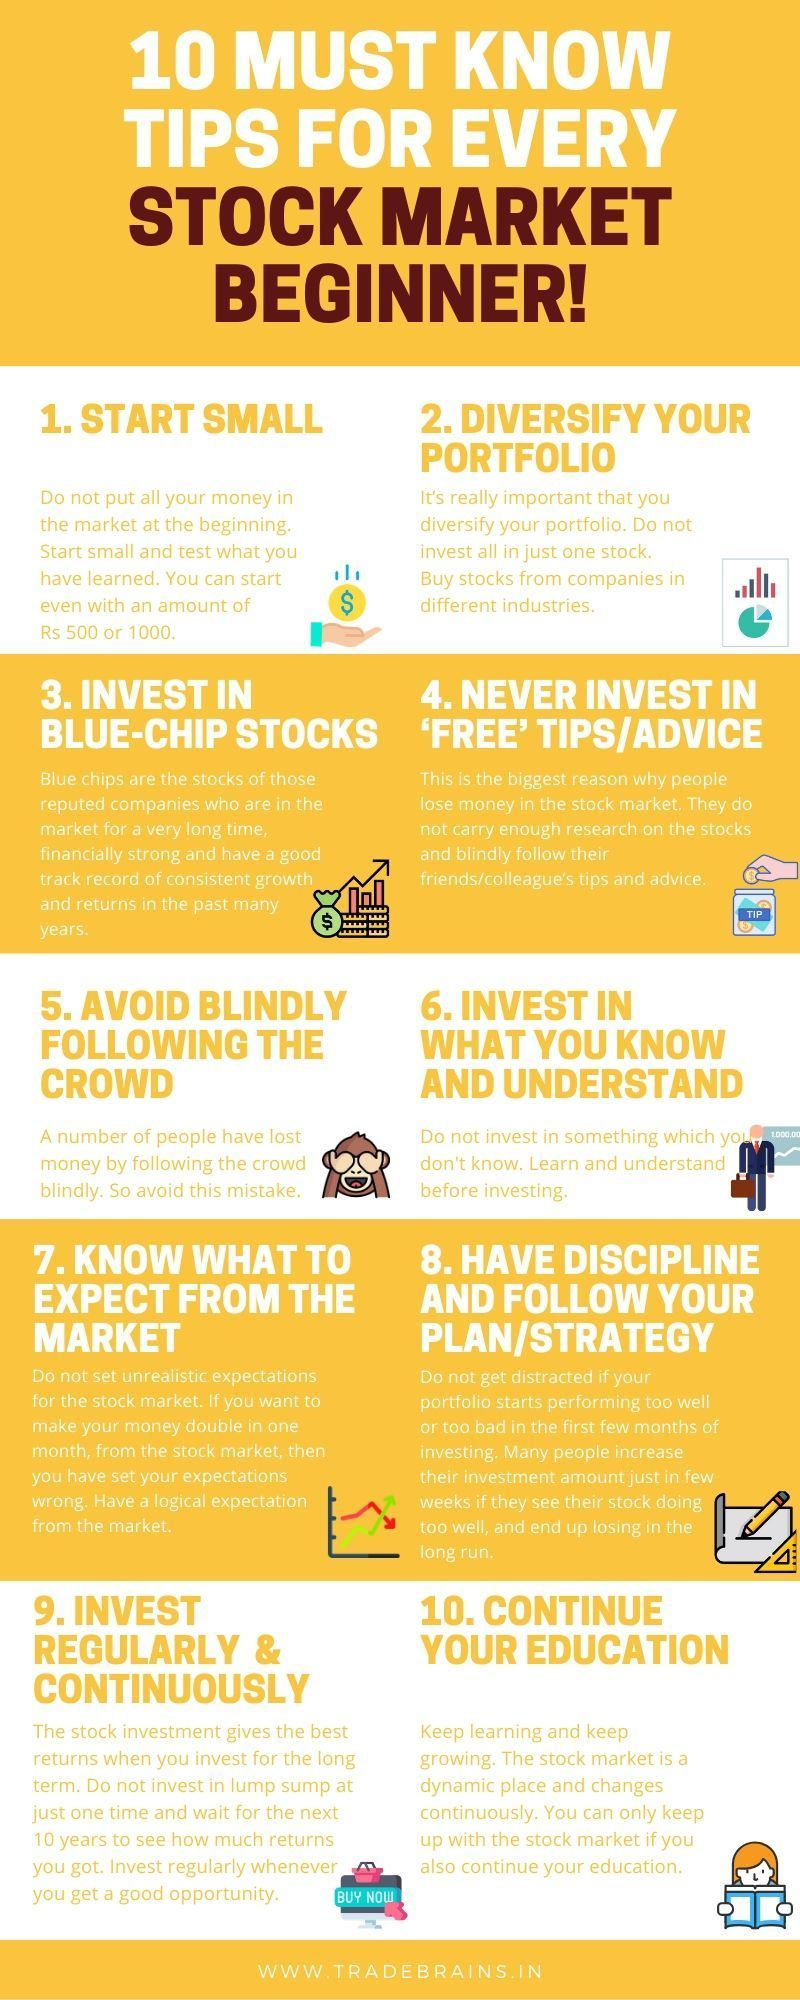 How to Invest in Share Market? A Complete Beginner's Guide! in 2020 |  Investing in shares, Finance investing, Investing